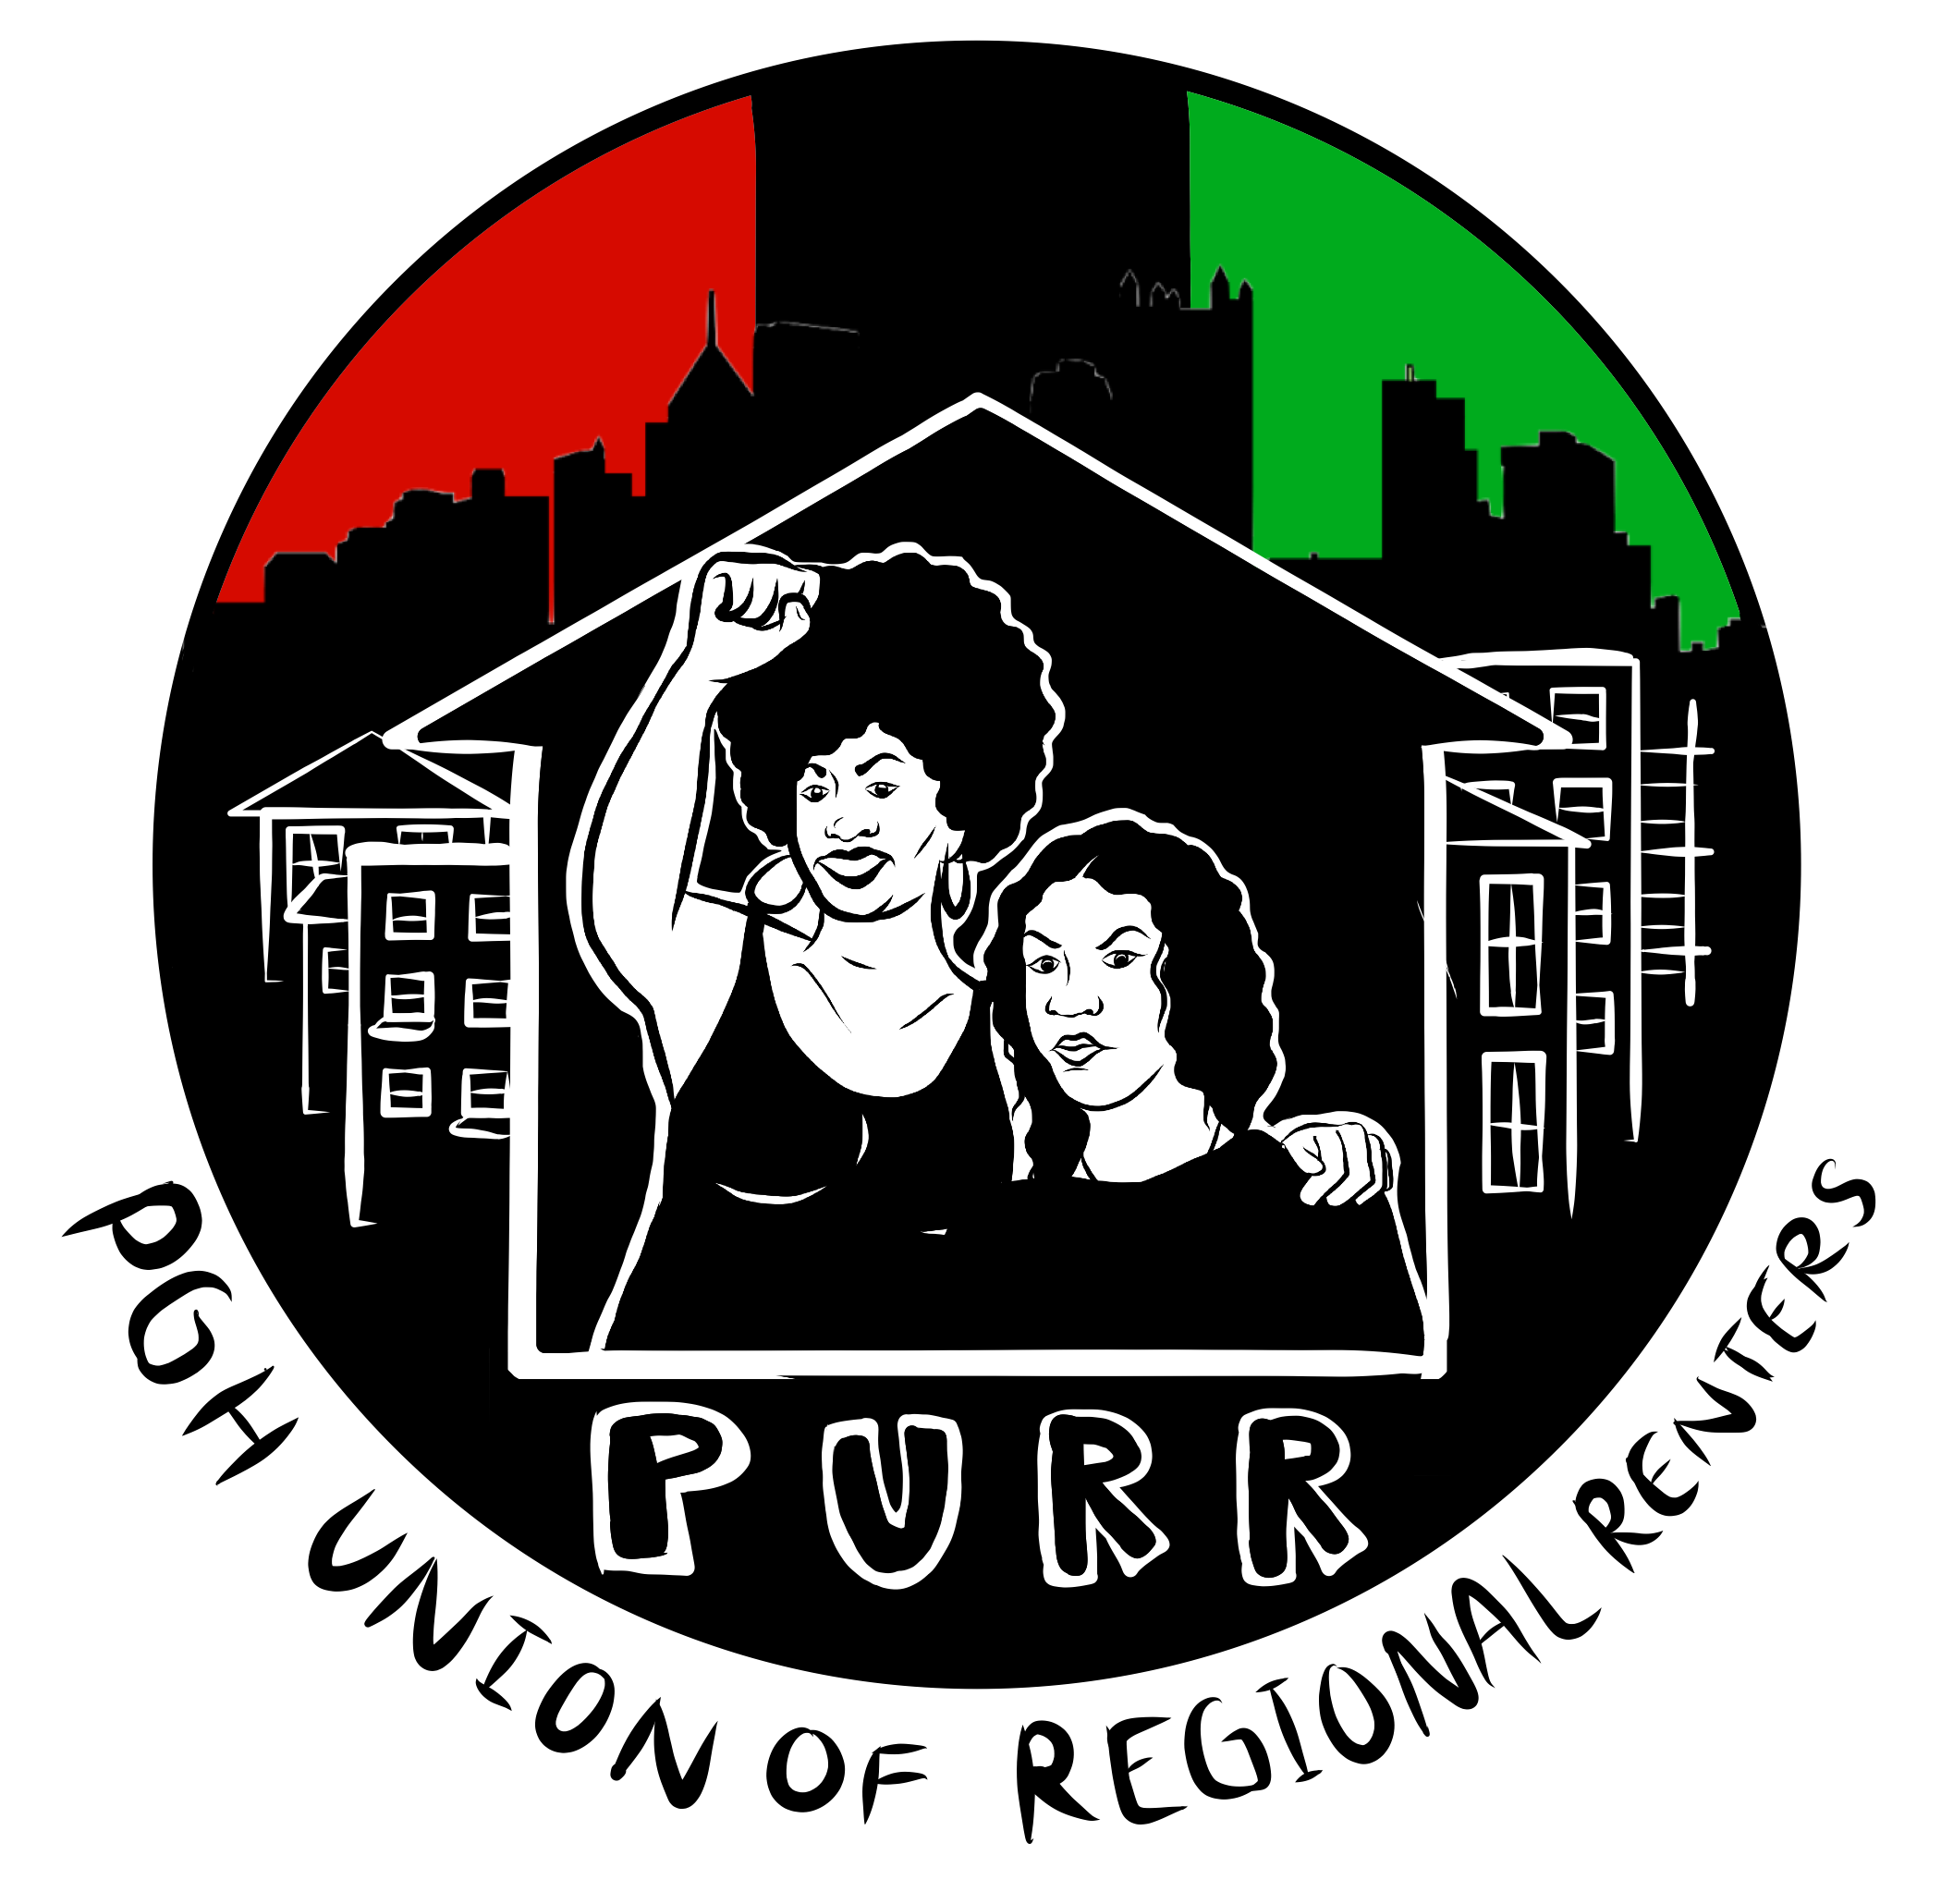 Pittsburgh Union of Regional Renters